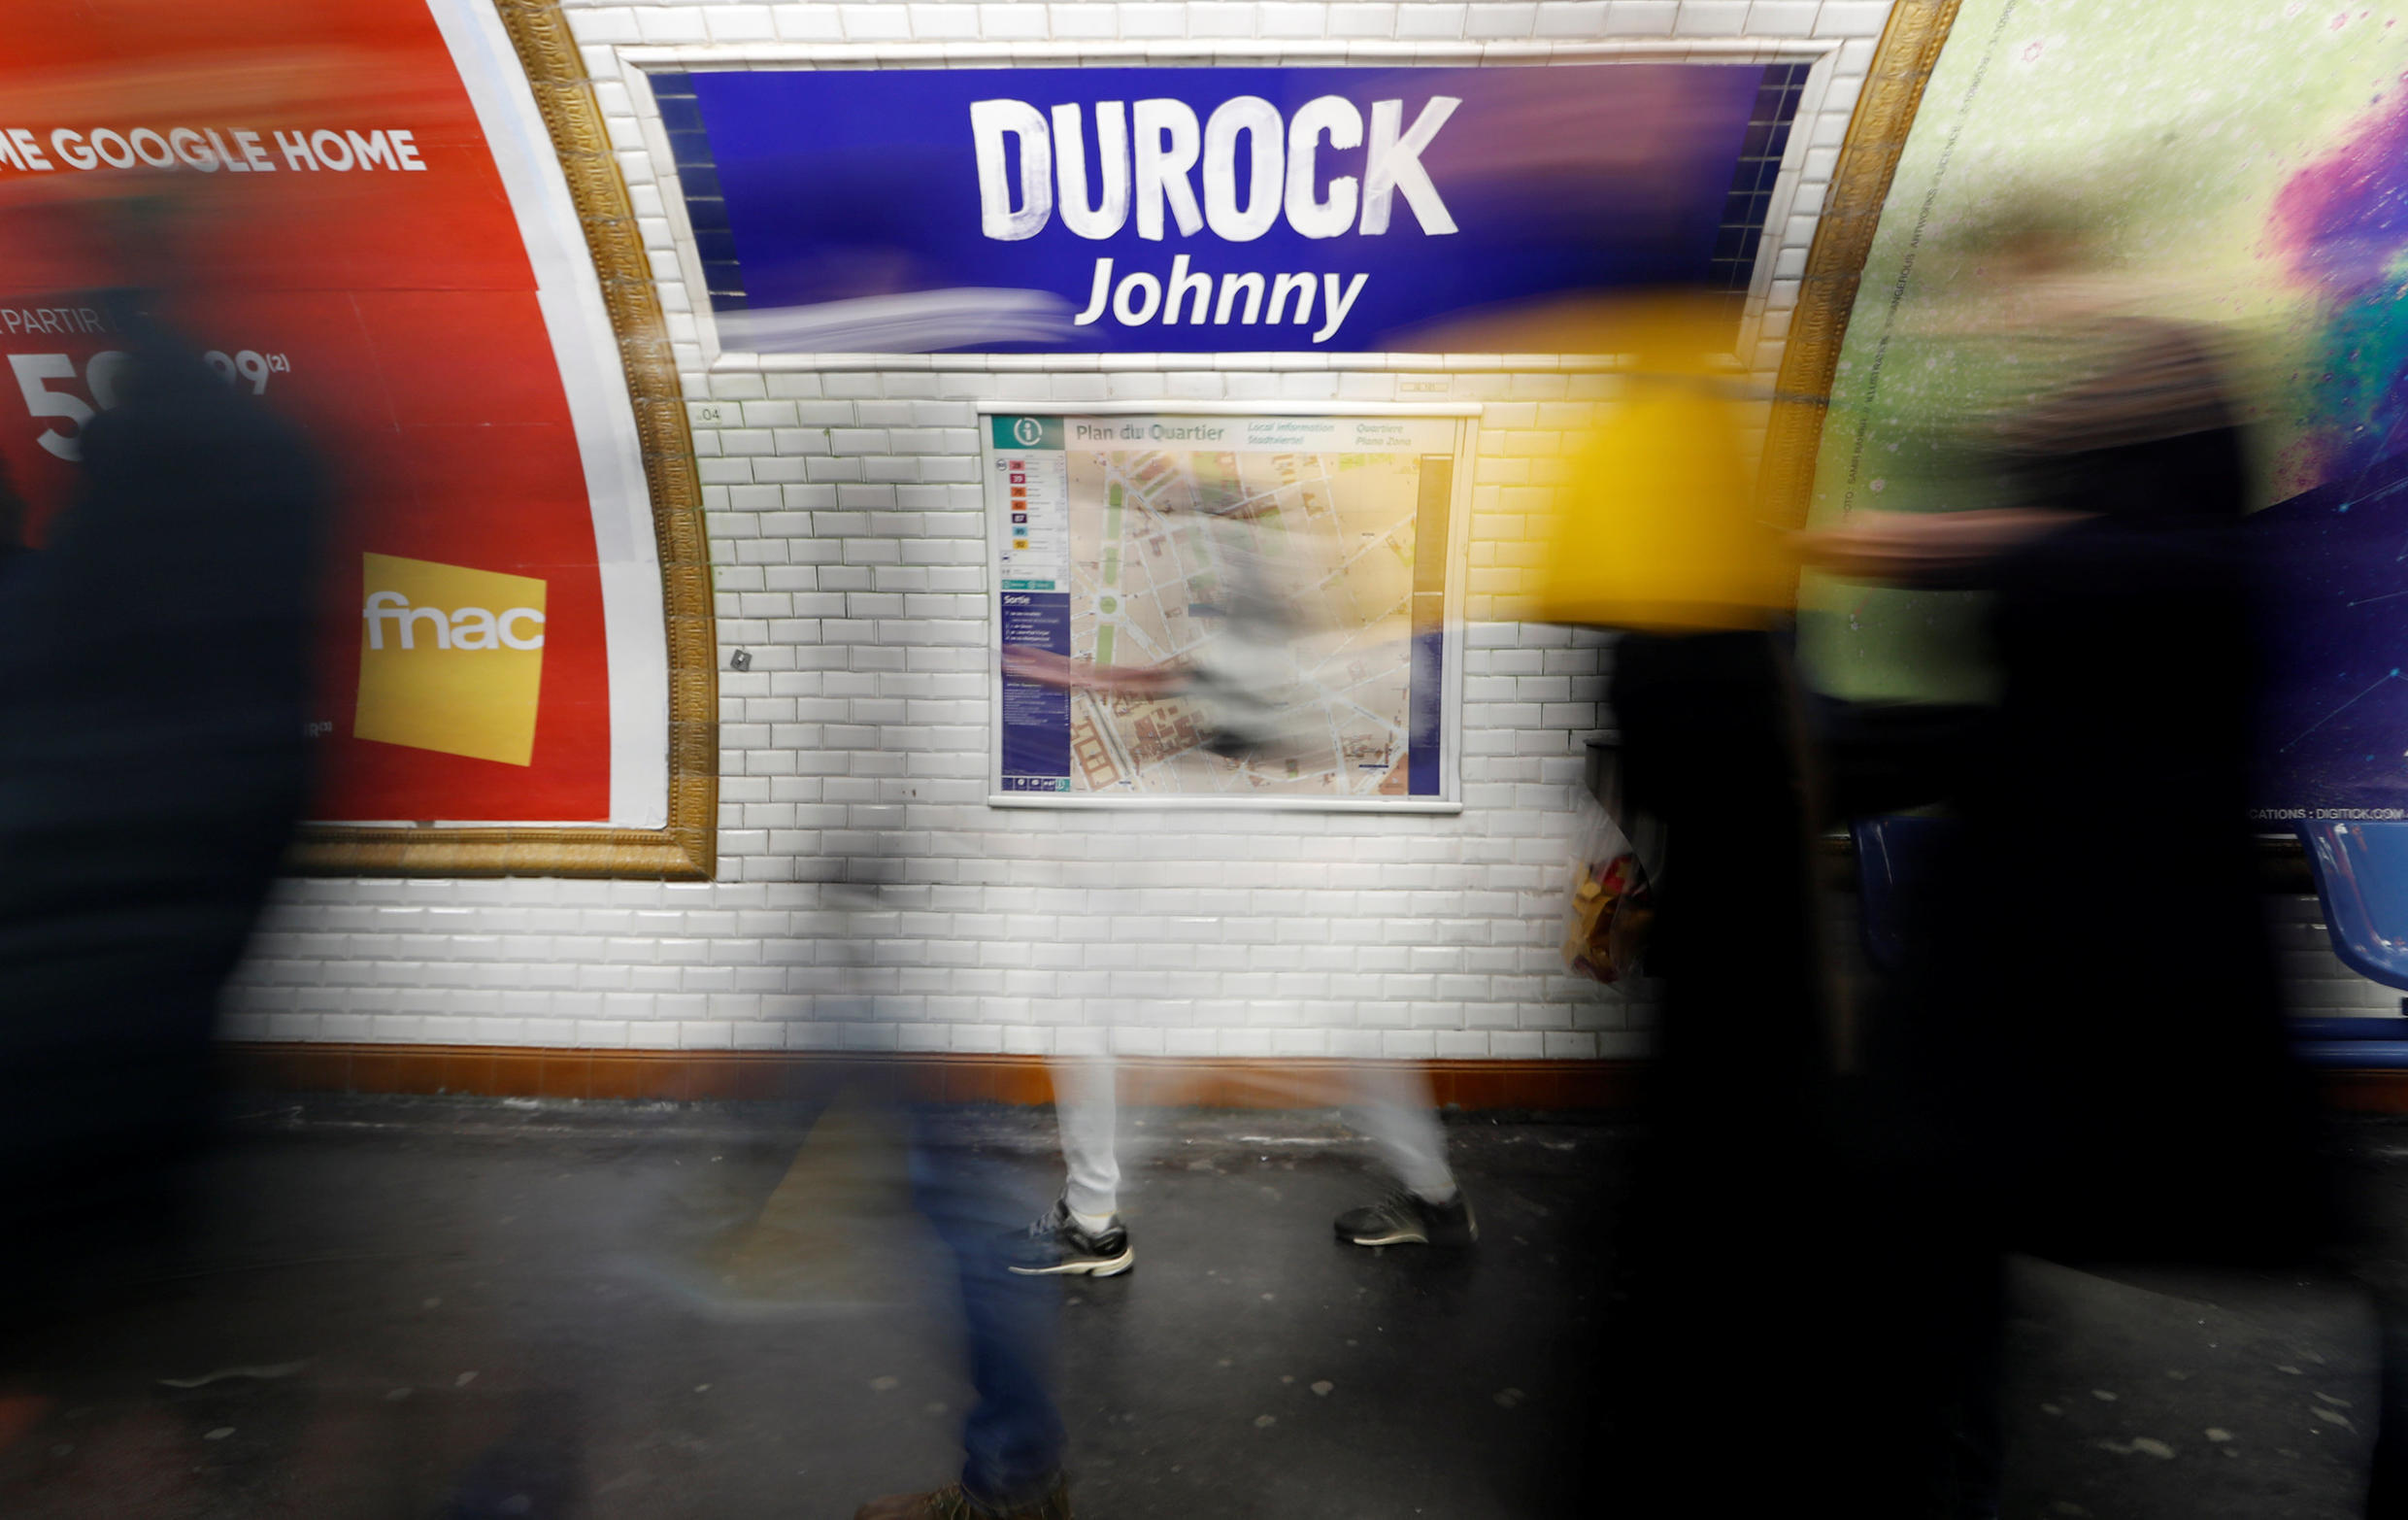 """Commuters walk past a sign which reads, """"DUROCK Johnny"""" on the wall of Duroc metro station in Paris."""